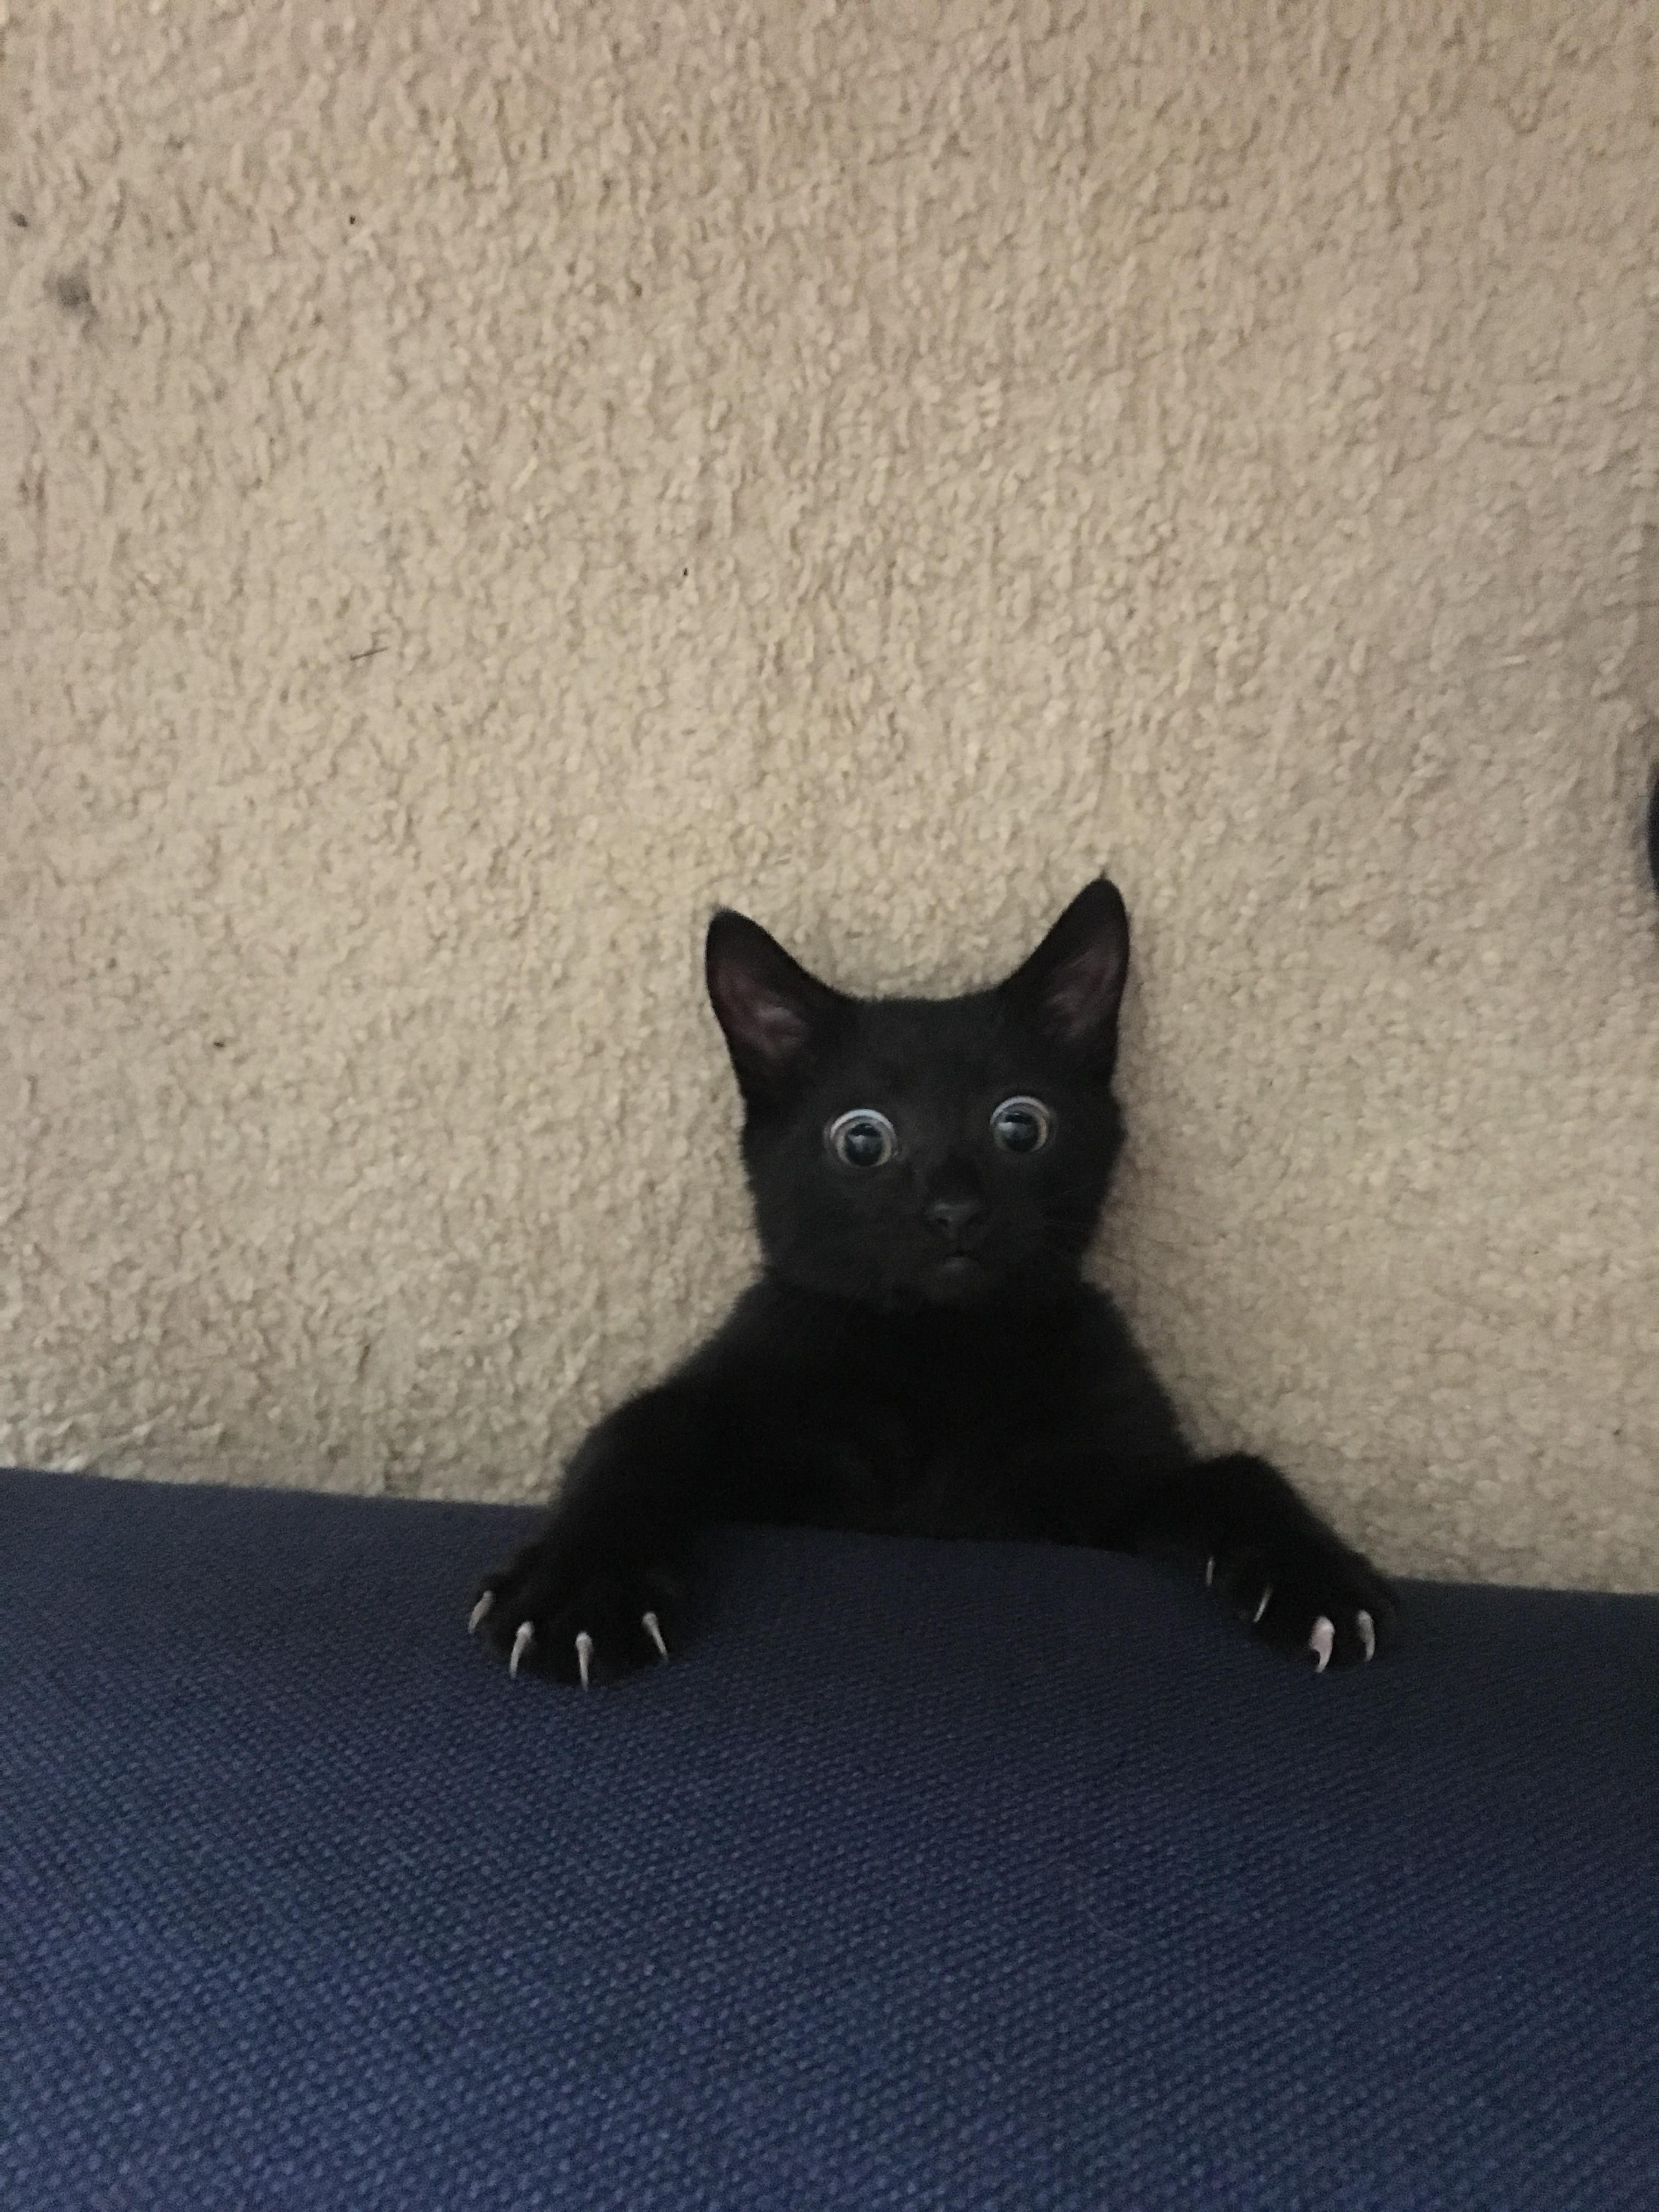 I Heard A Noise Coming From Under The Couch And This Is What I Saw When I Looked Down Hello There Bright Cat Having Kittens Cute Black Cats Beautiful Cats